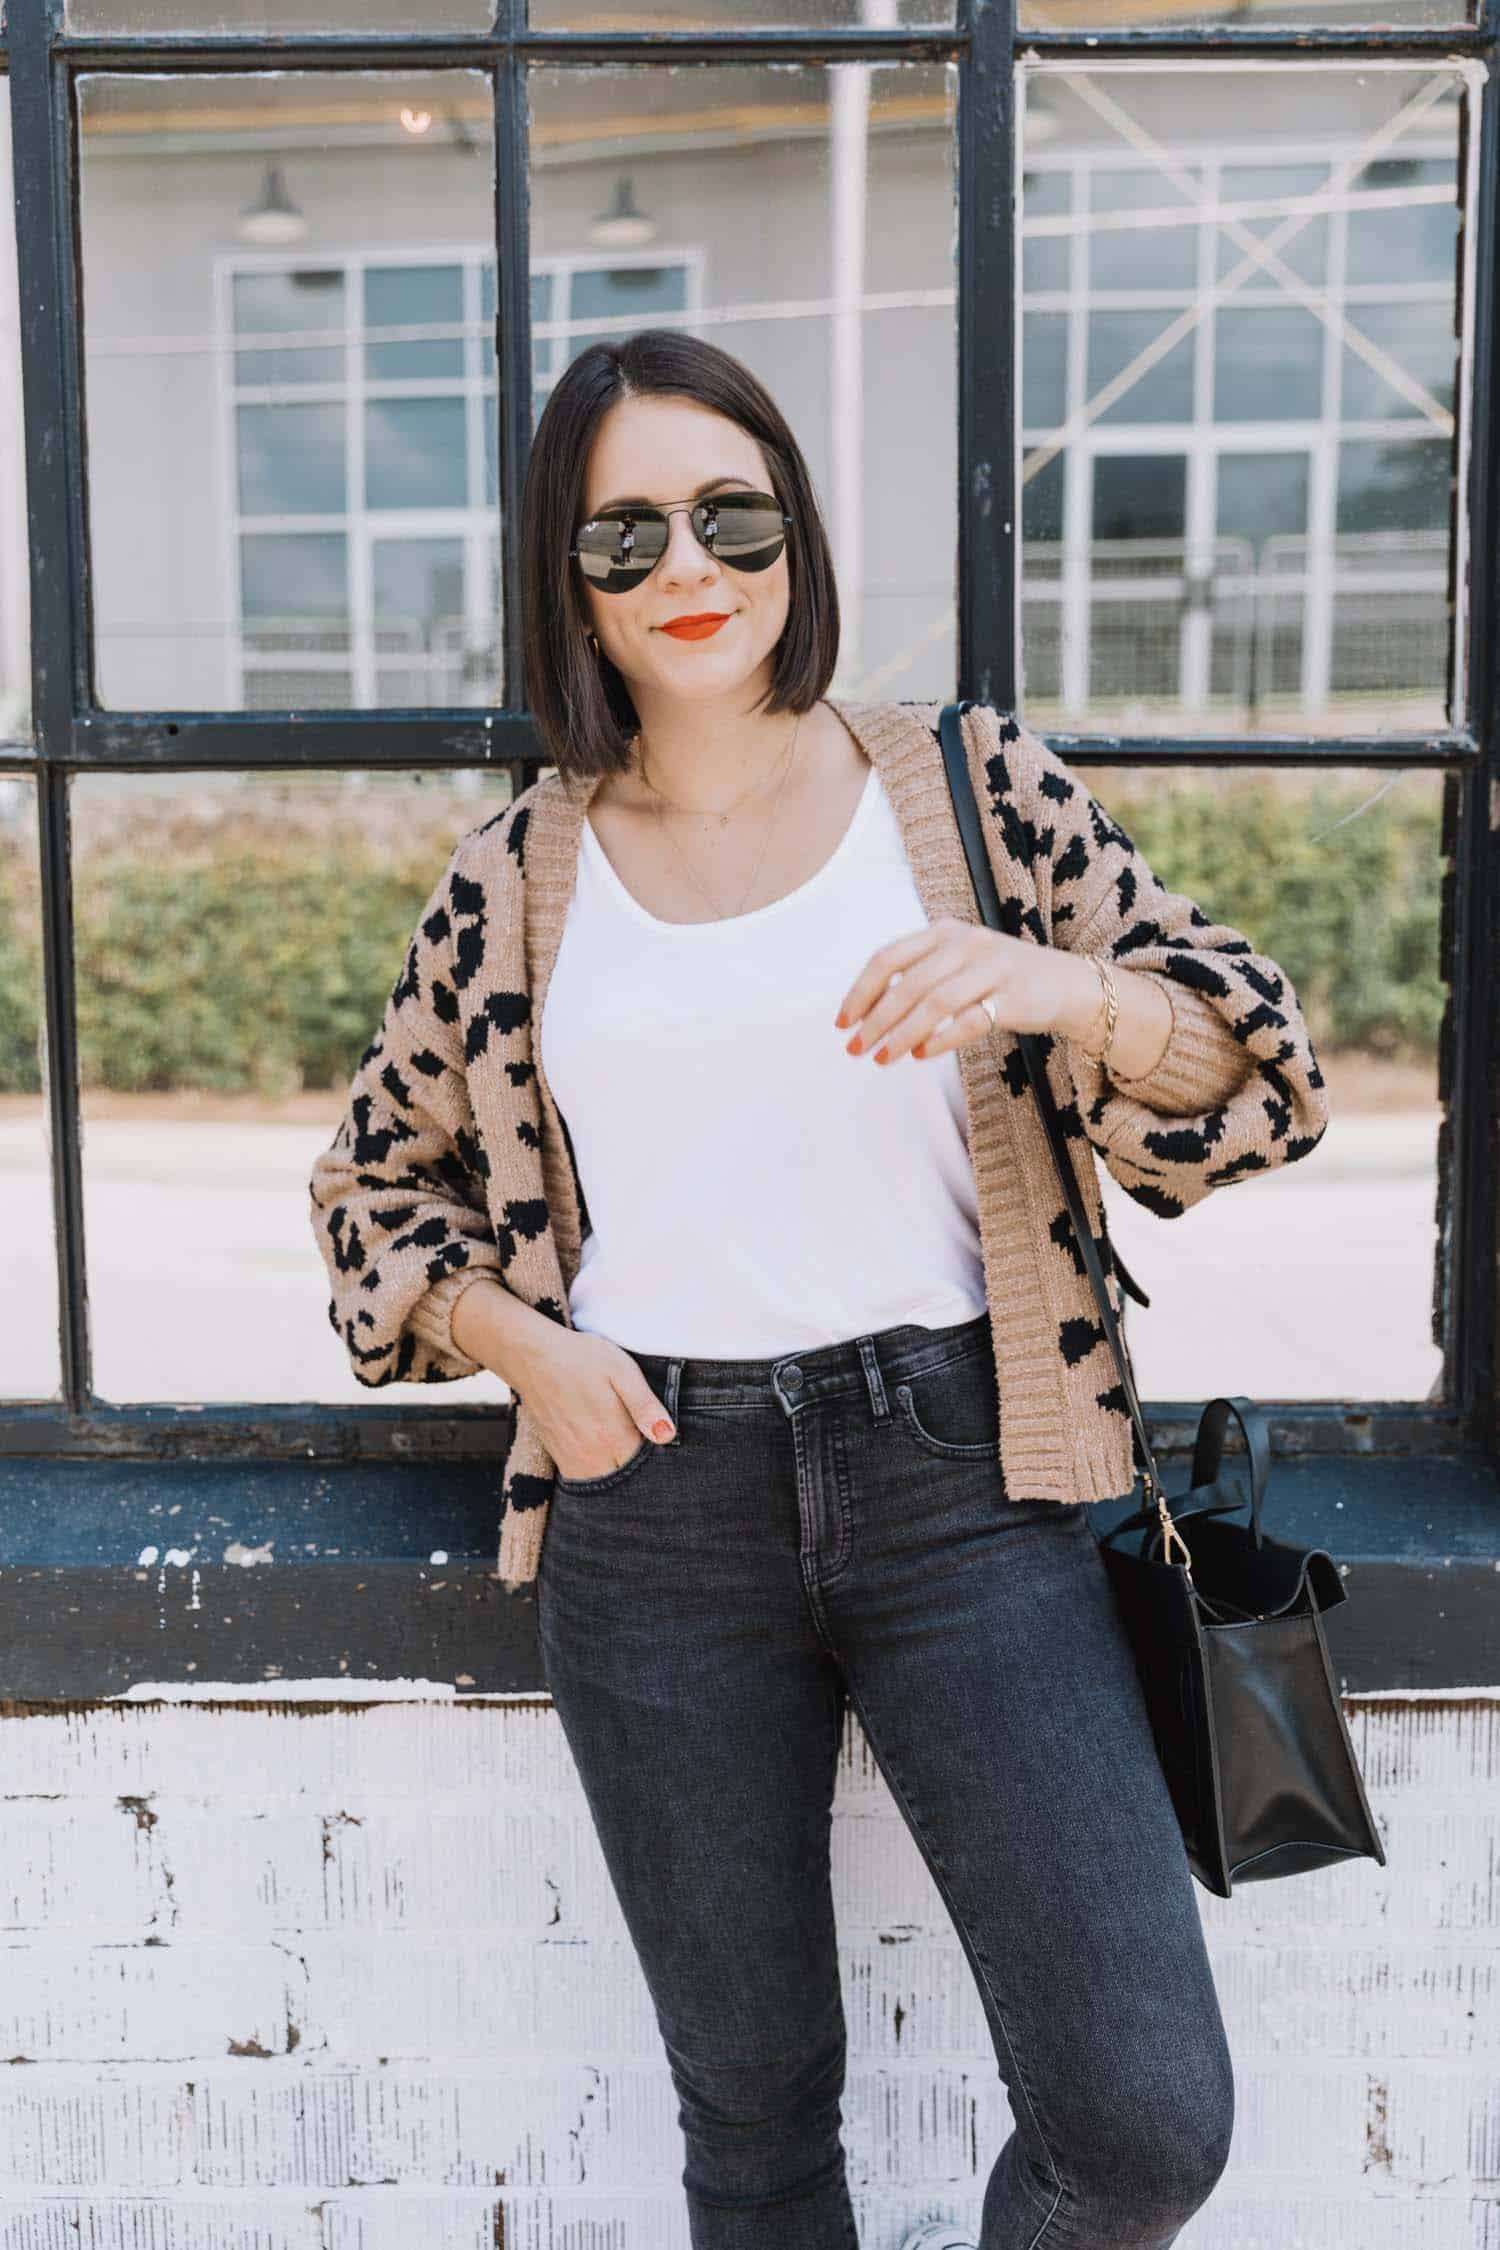 Jessica Camerata styles a leopard cardigan with black jeans for fall